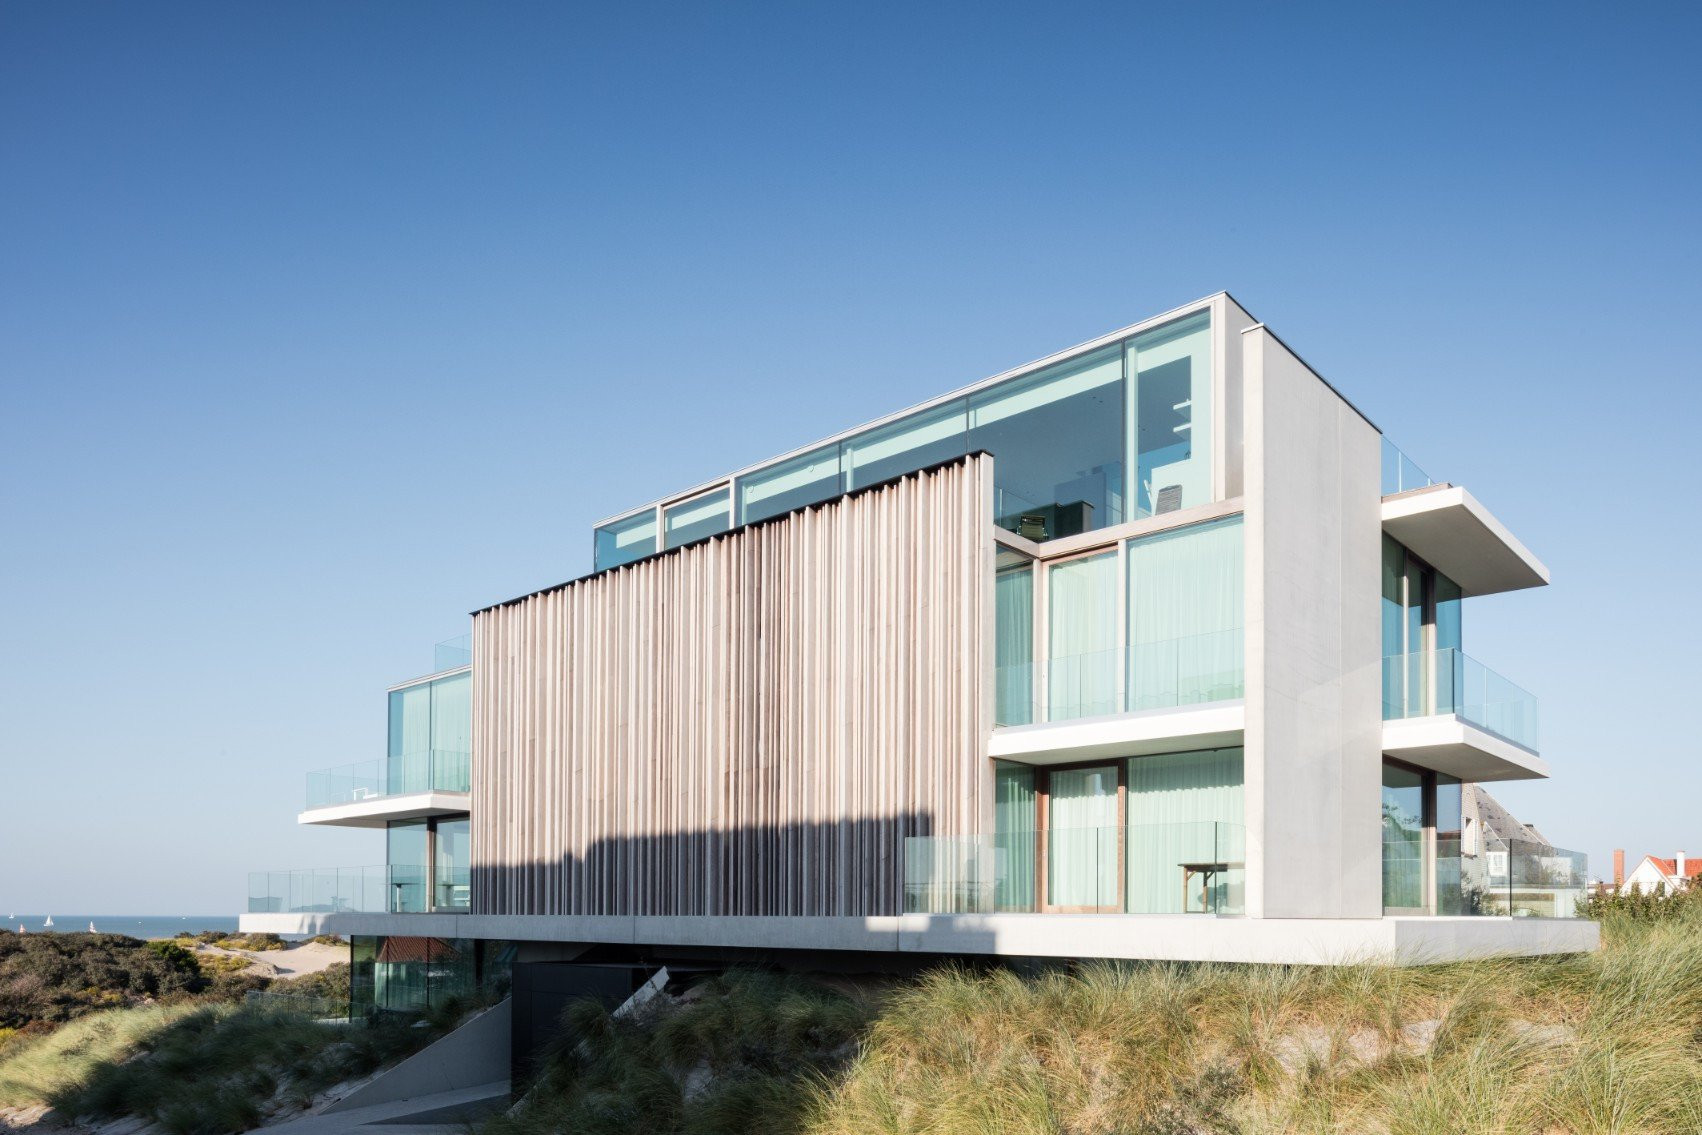 Rietveldprojects-Residence-ON-appartement-design-architectuur-kust-tvdv5_1702x0